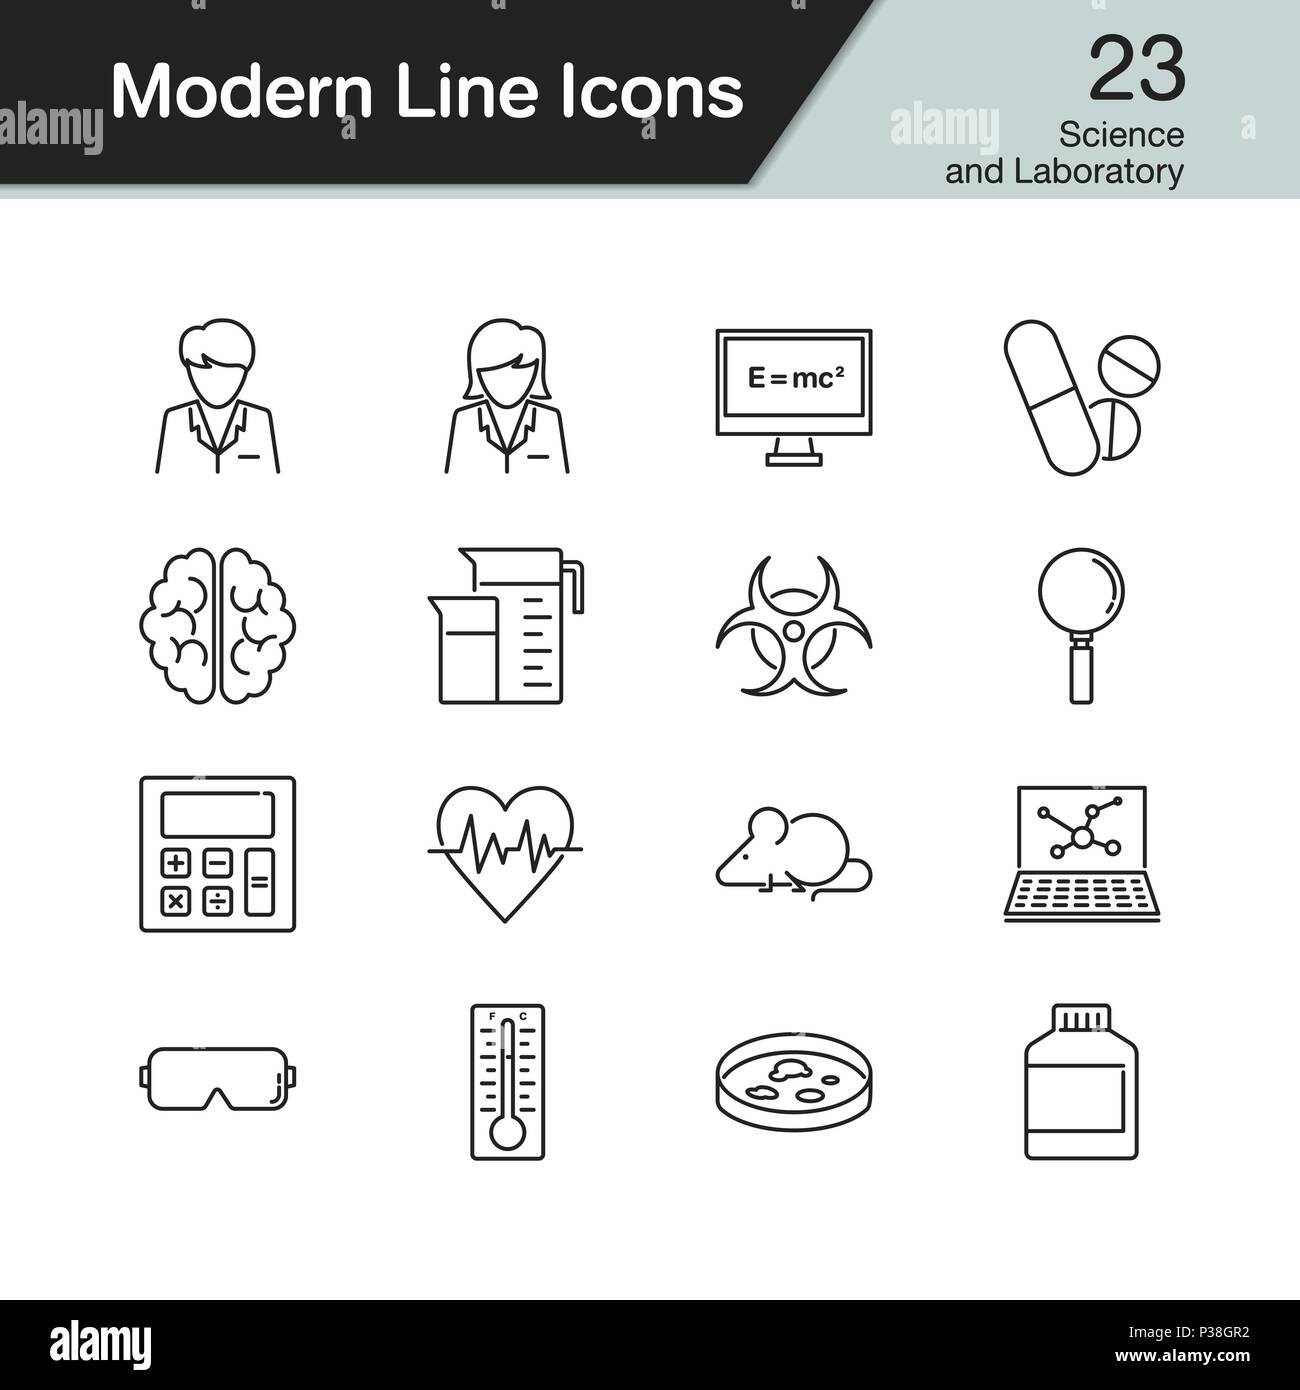 Science and Laboratory icons. Modern line design set 23. For presentation, graphic design, mobile application, web design, infographics. Vector illust - Stock Image